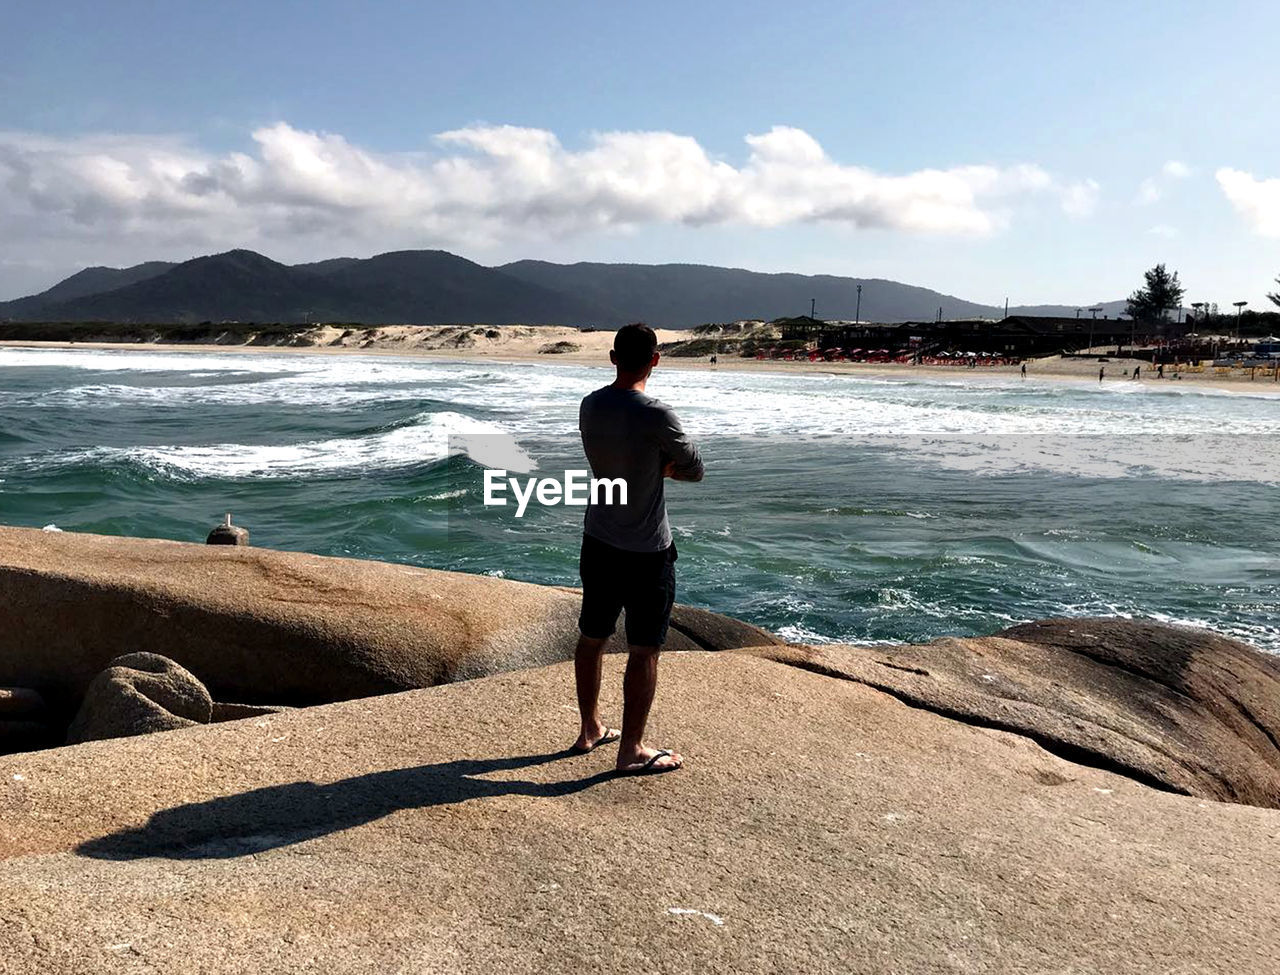 water, sea, one person, standing, real people, sky, lifestyles, leisure activity, full length, scenics - nature, mountain, rock, beach, rock - object, nature, beauty in nature, cloud - sky, solid, outdoors, mountain range, shorts, looking at view